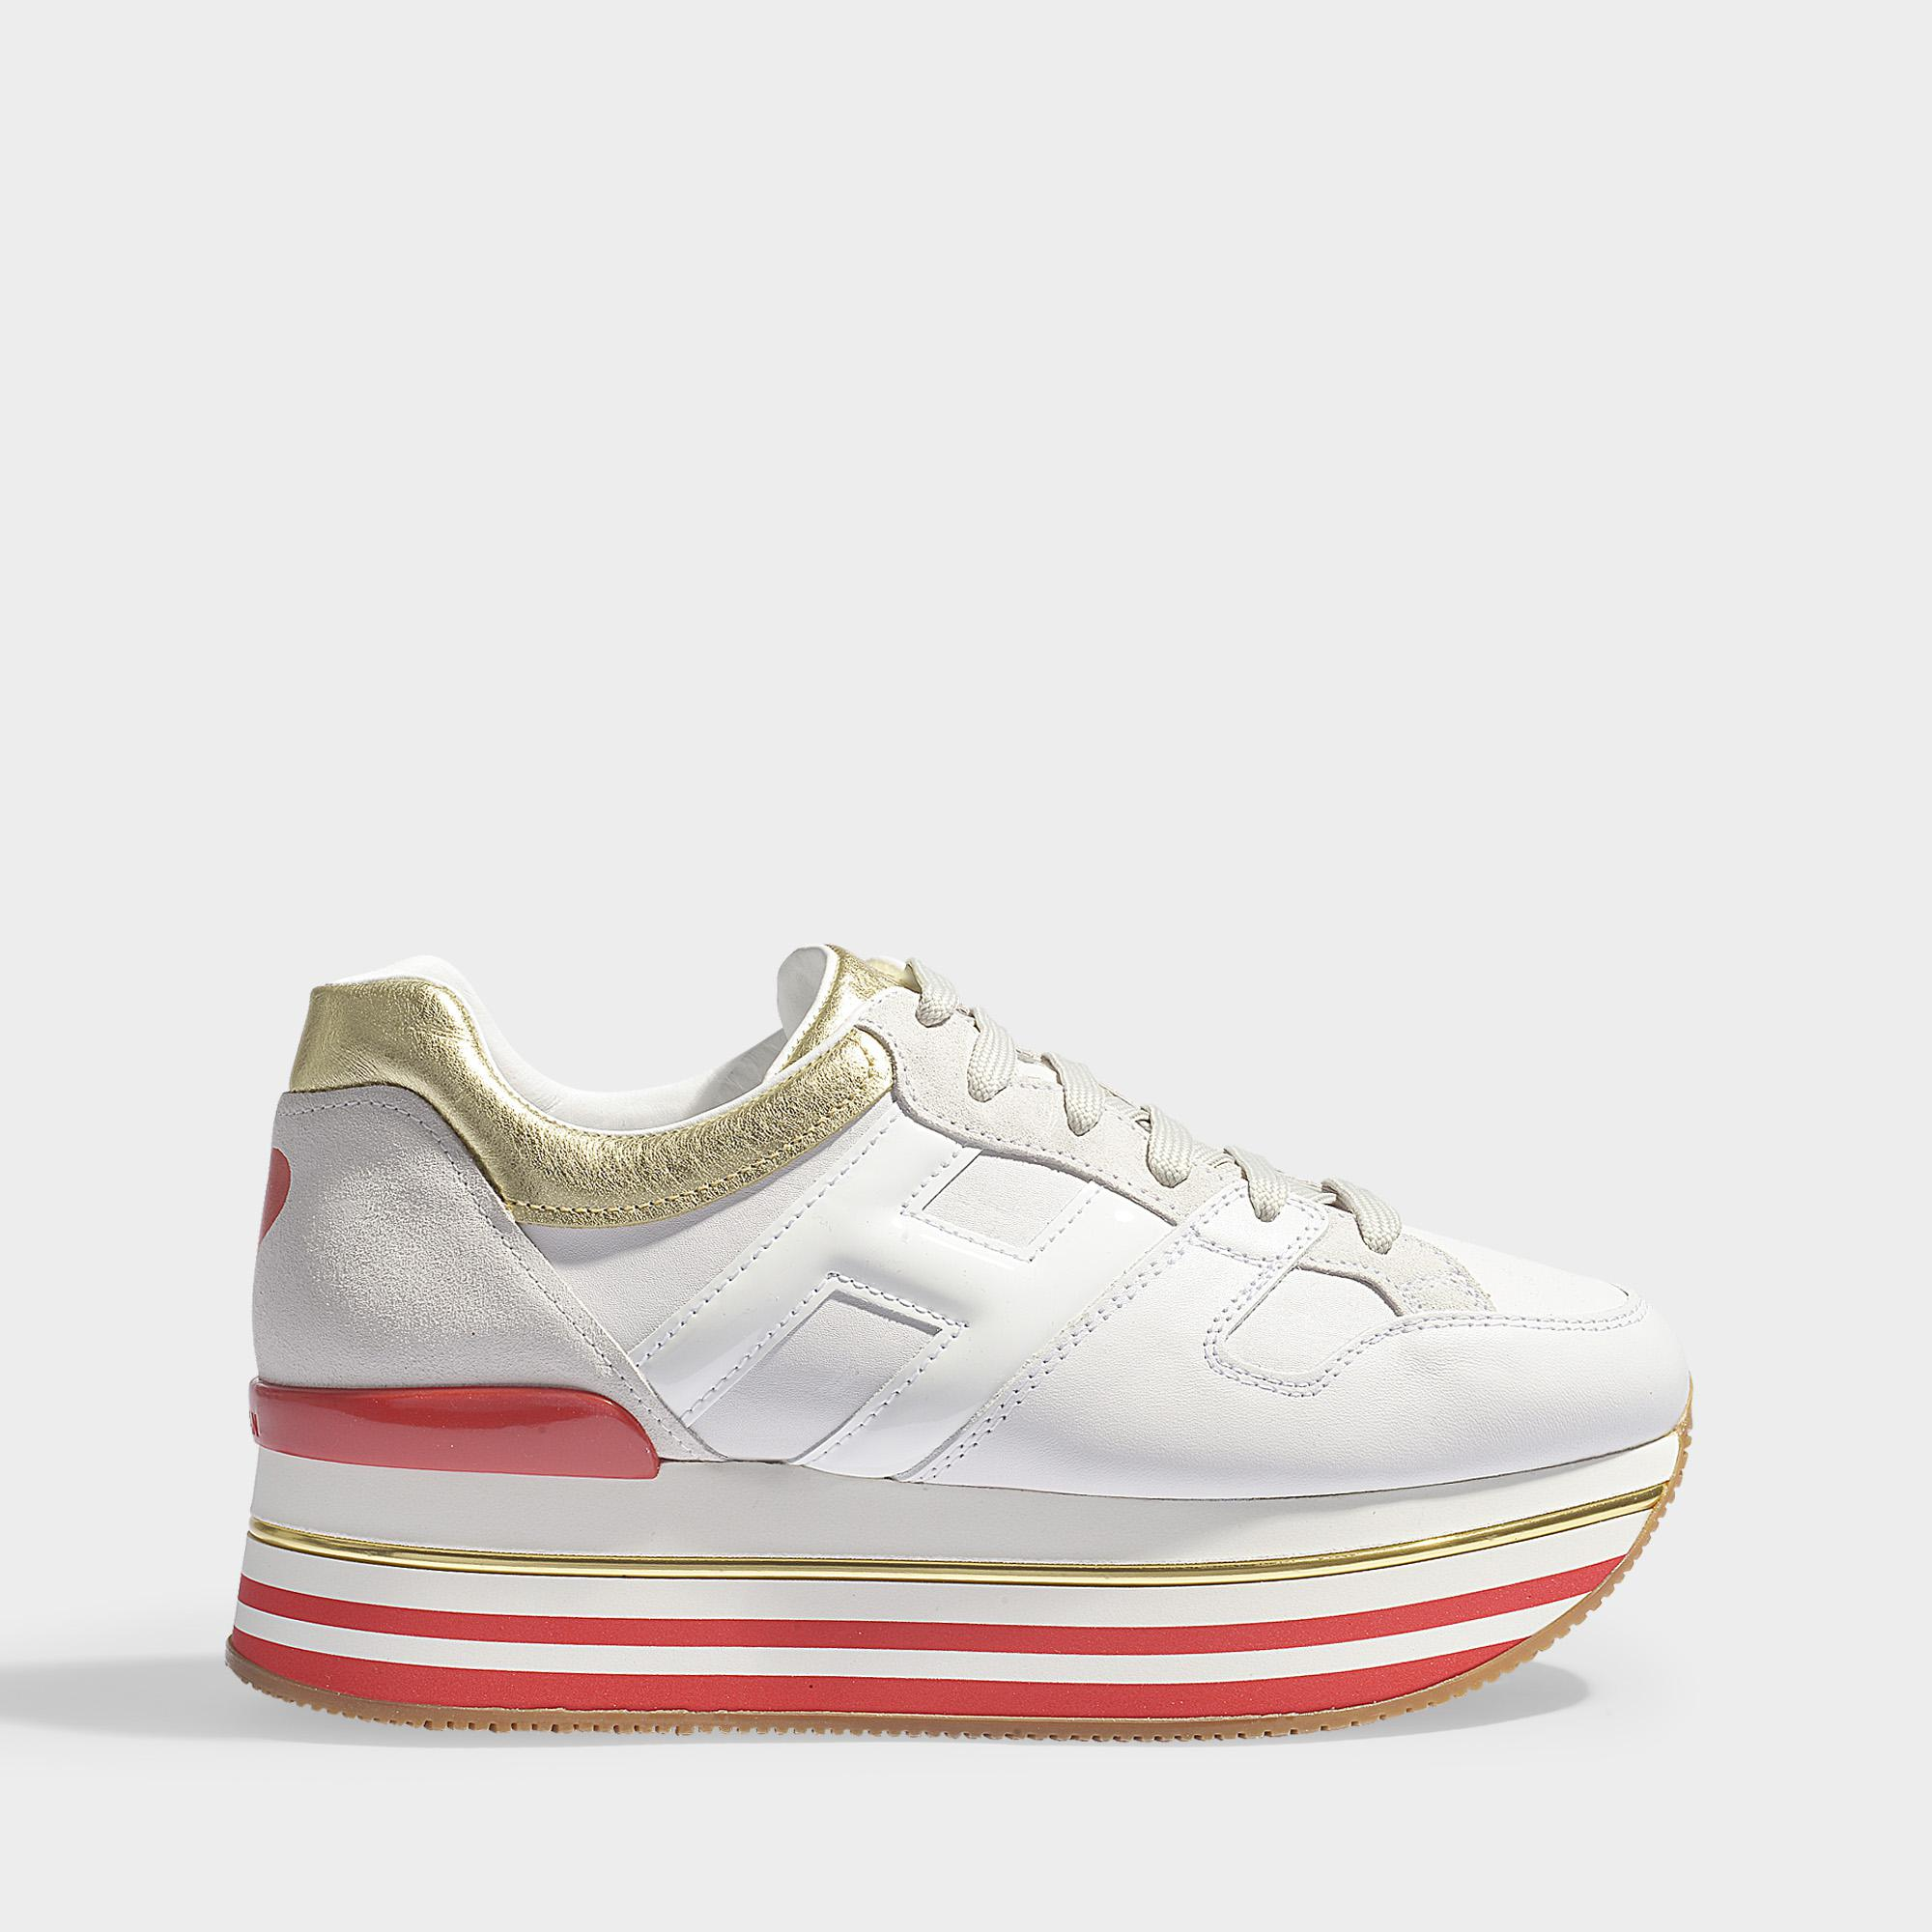 Hogan Maxi Platform Sneakers With Heart In White, Gold And Red ...